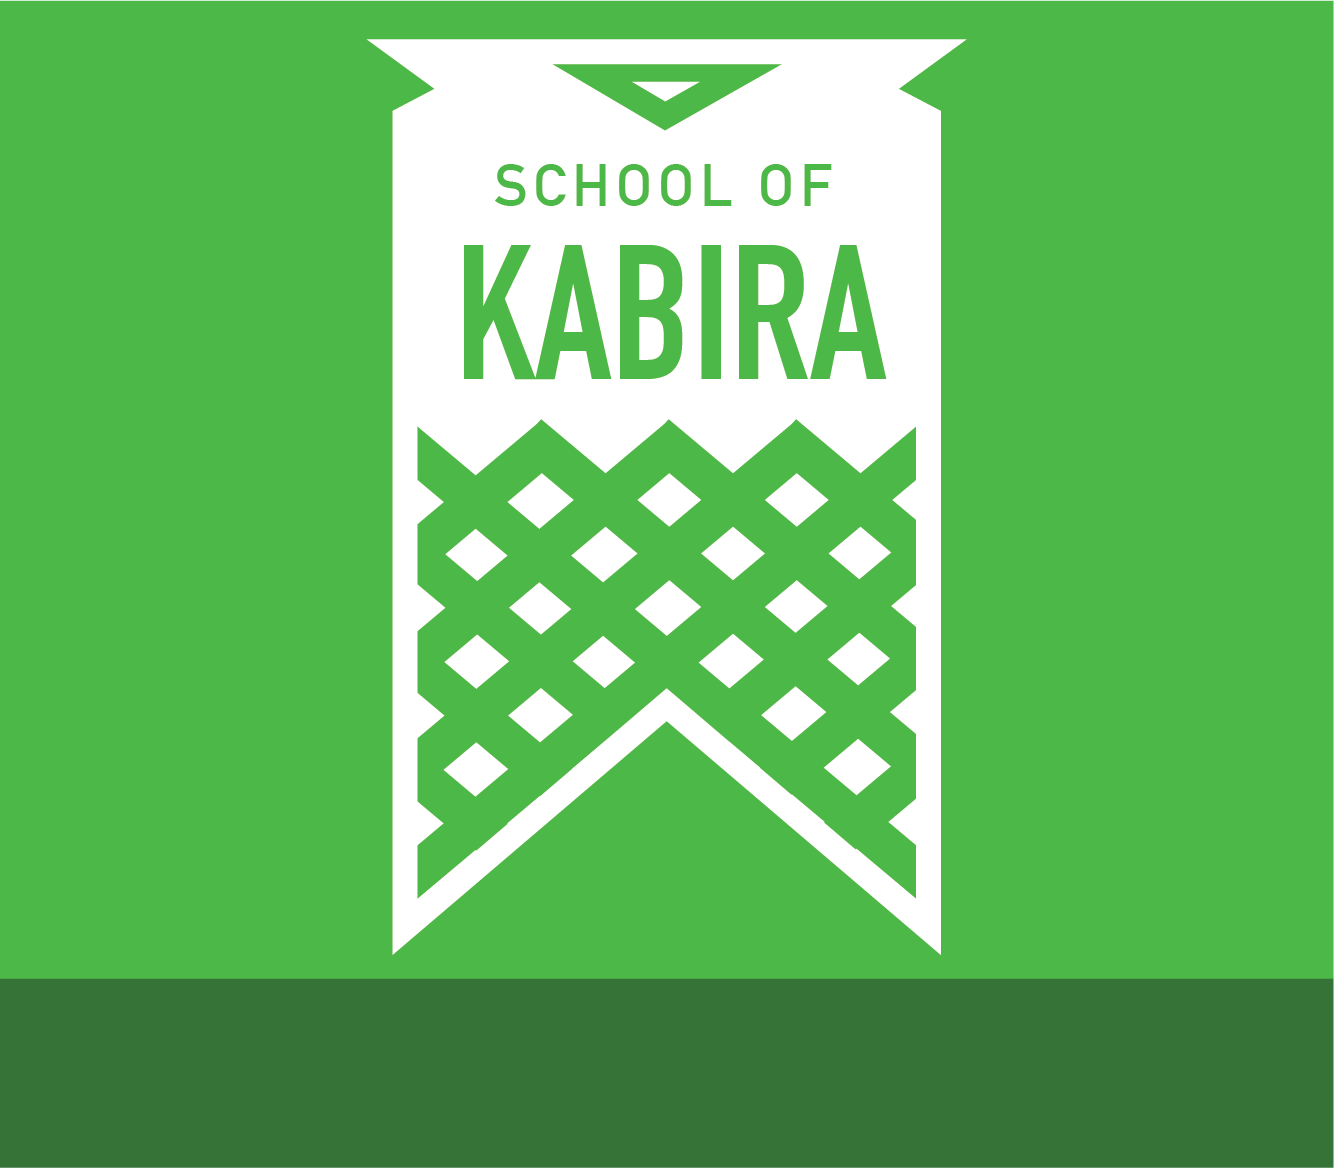 School of kabira